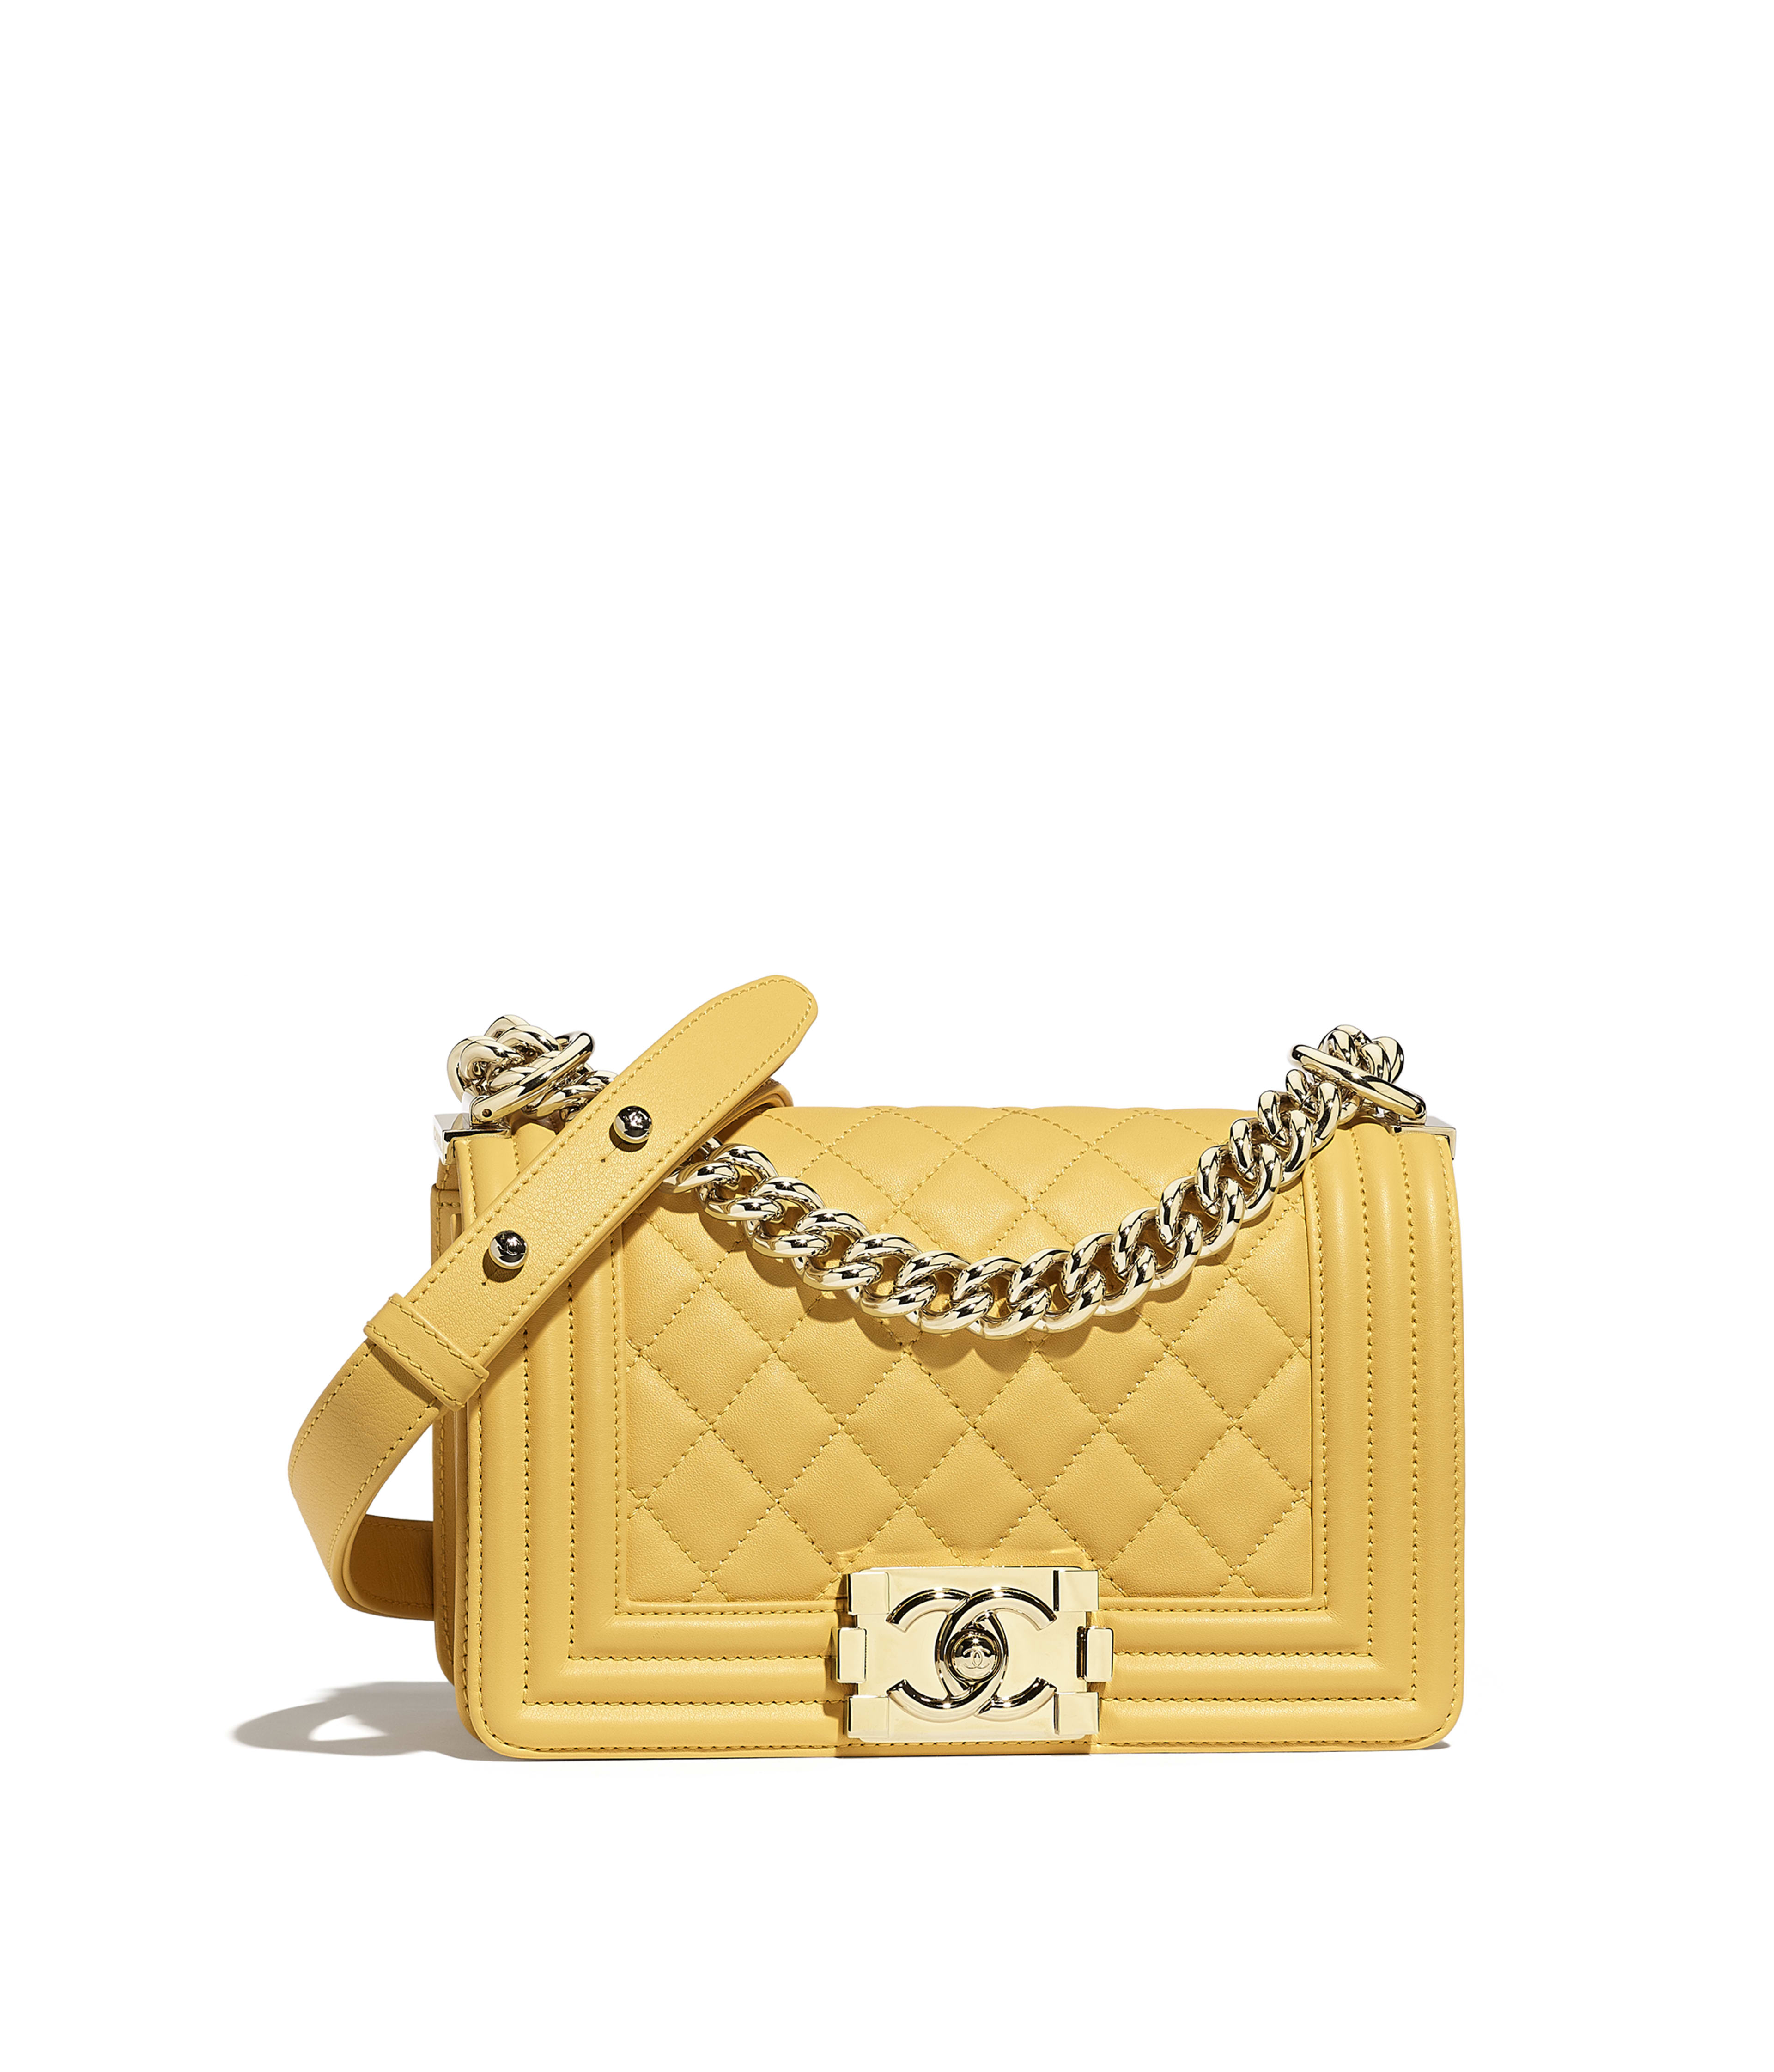 Boy Chanel Handbags Chanel